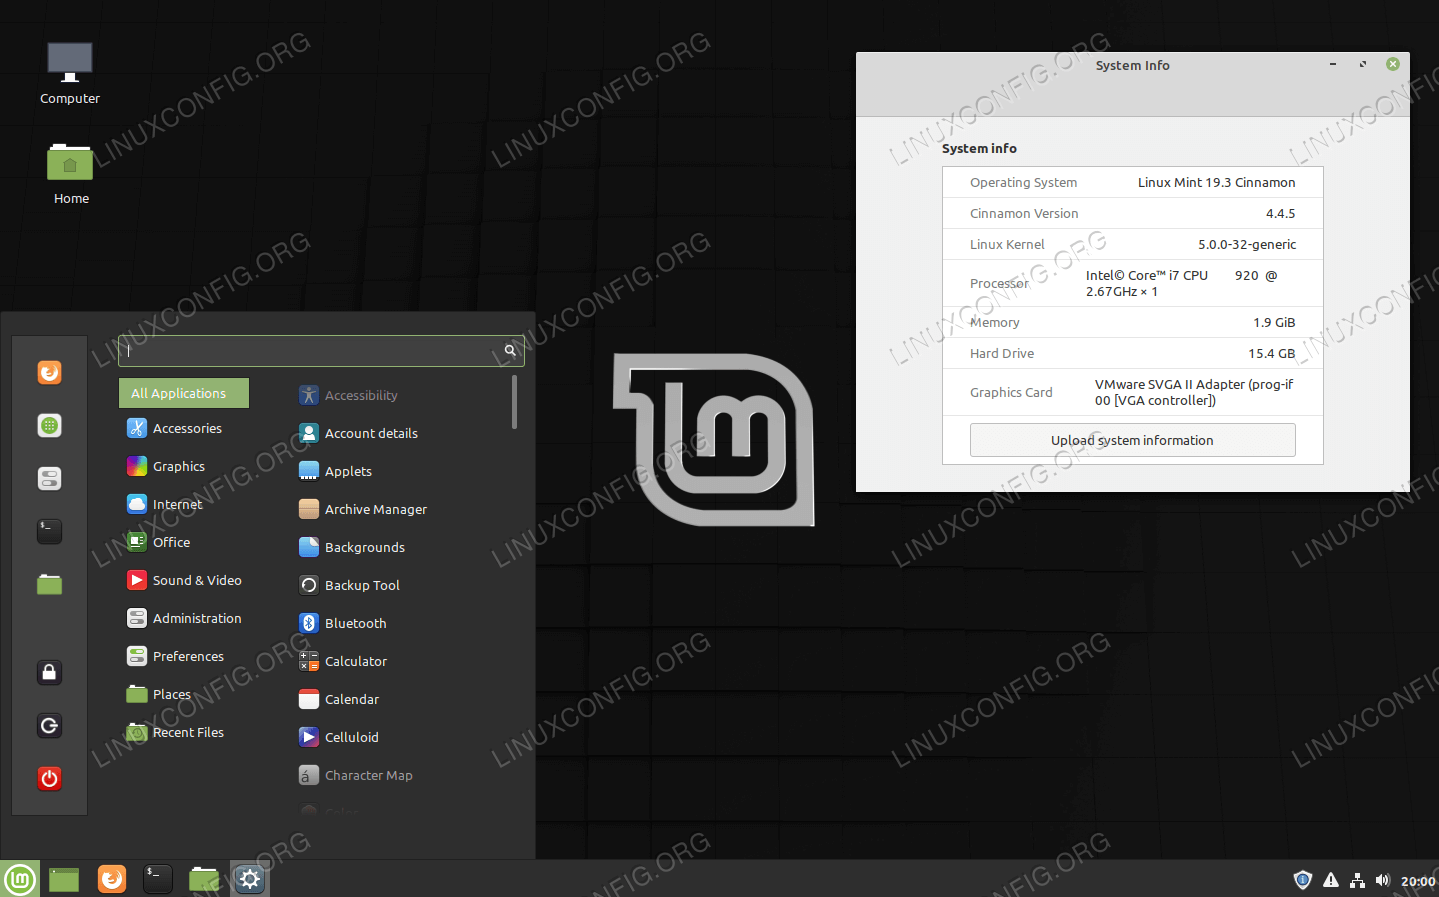 Linux Mint running Cinnamon desktop environment